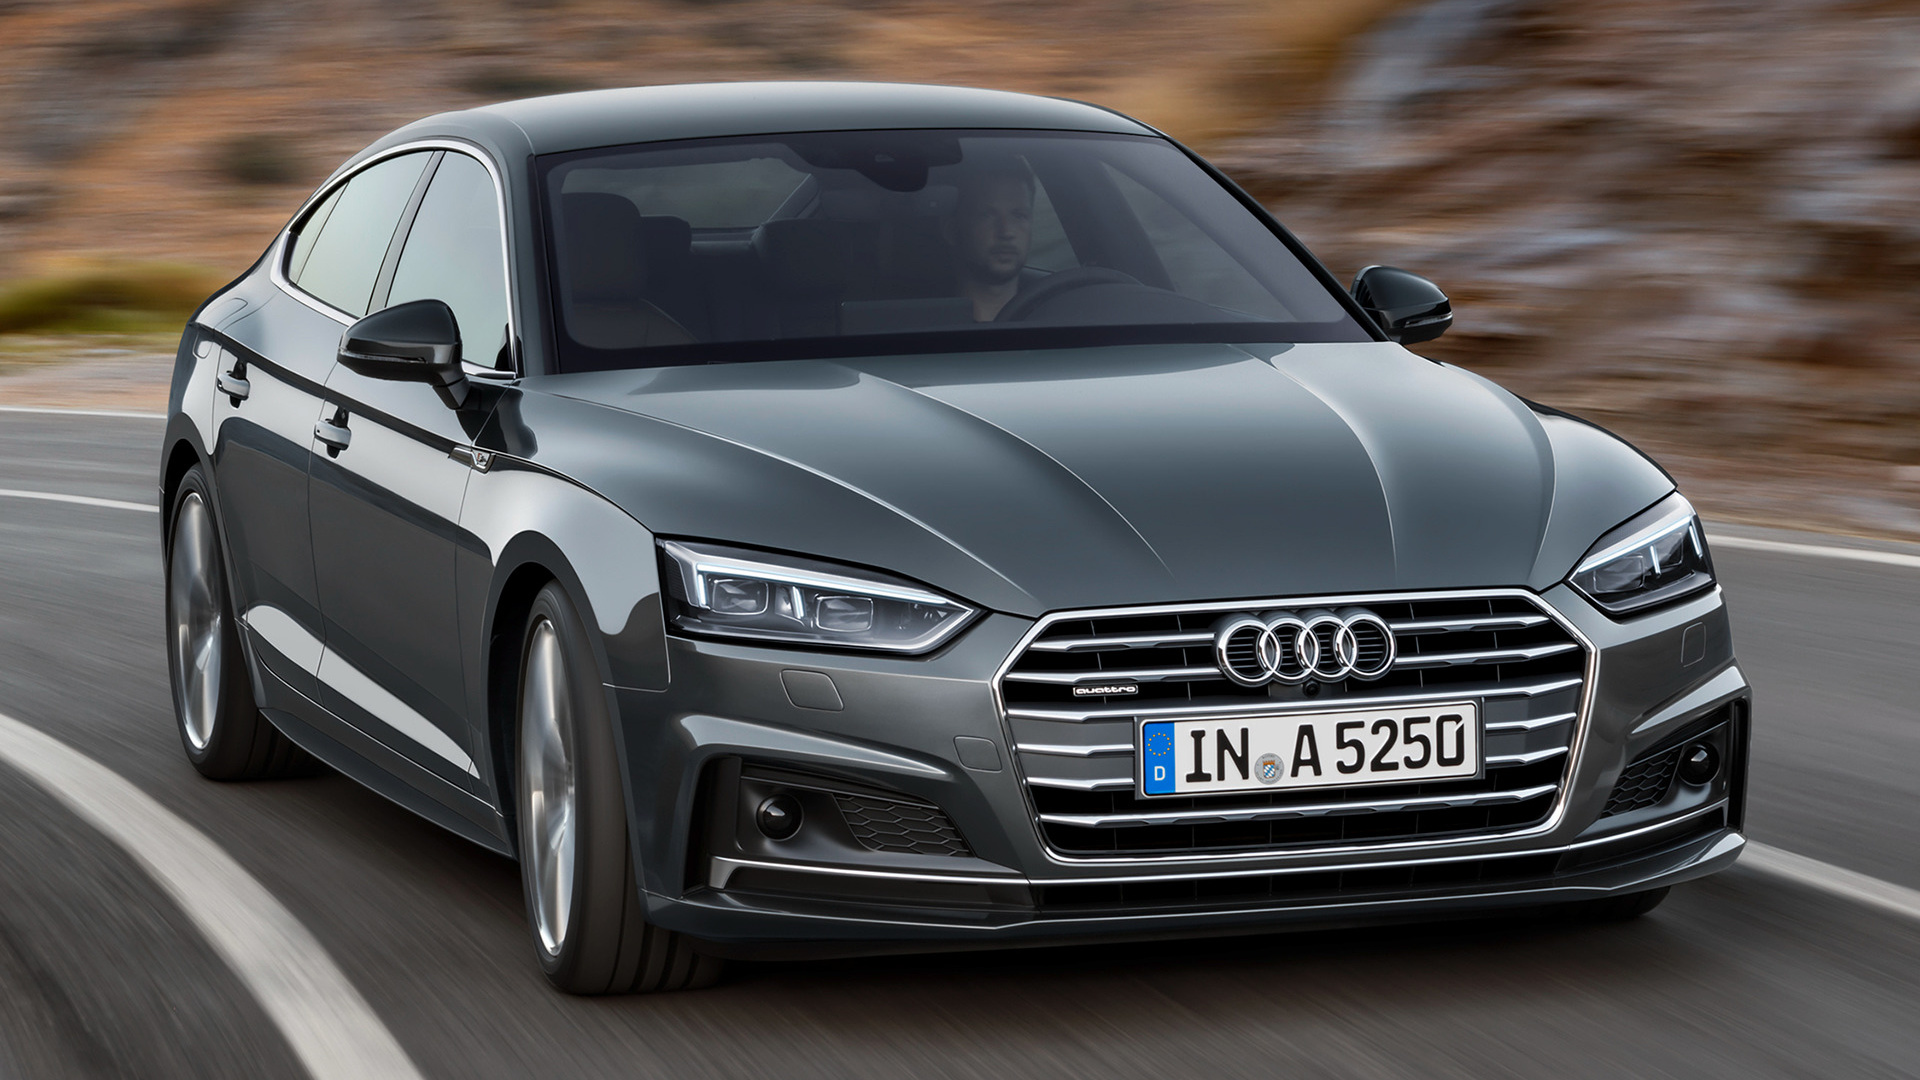 2016 Audi A5 Sportback S line - Wallpapers and HD Images ...